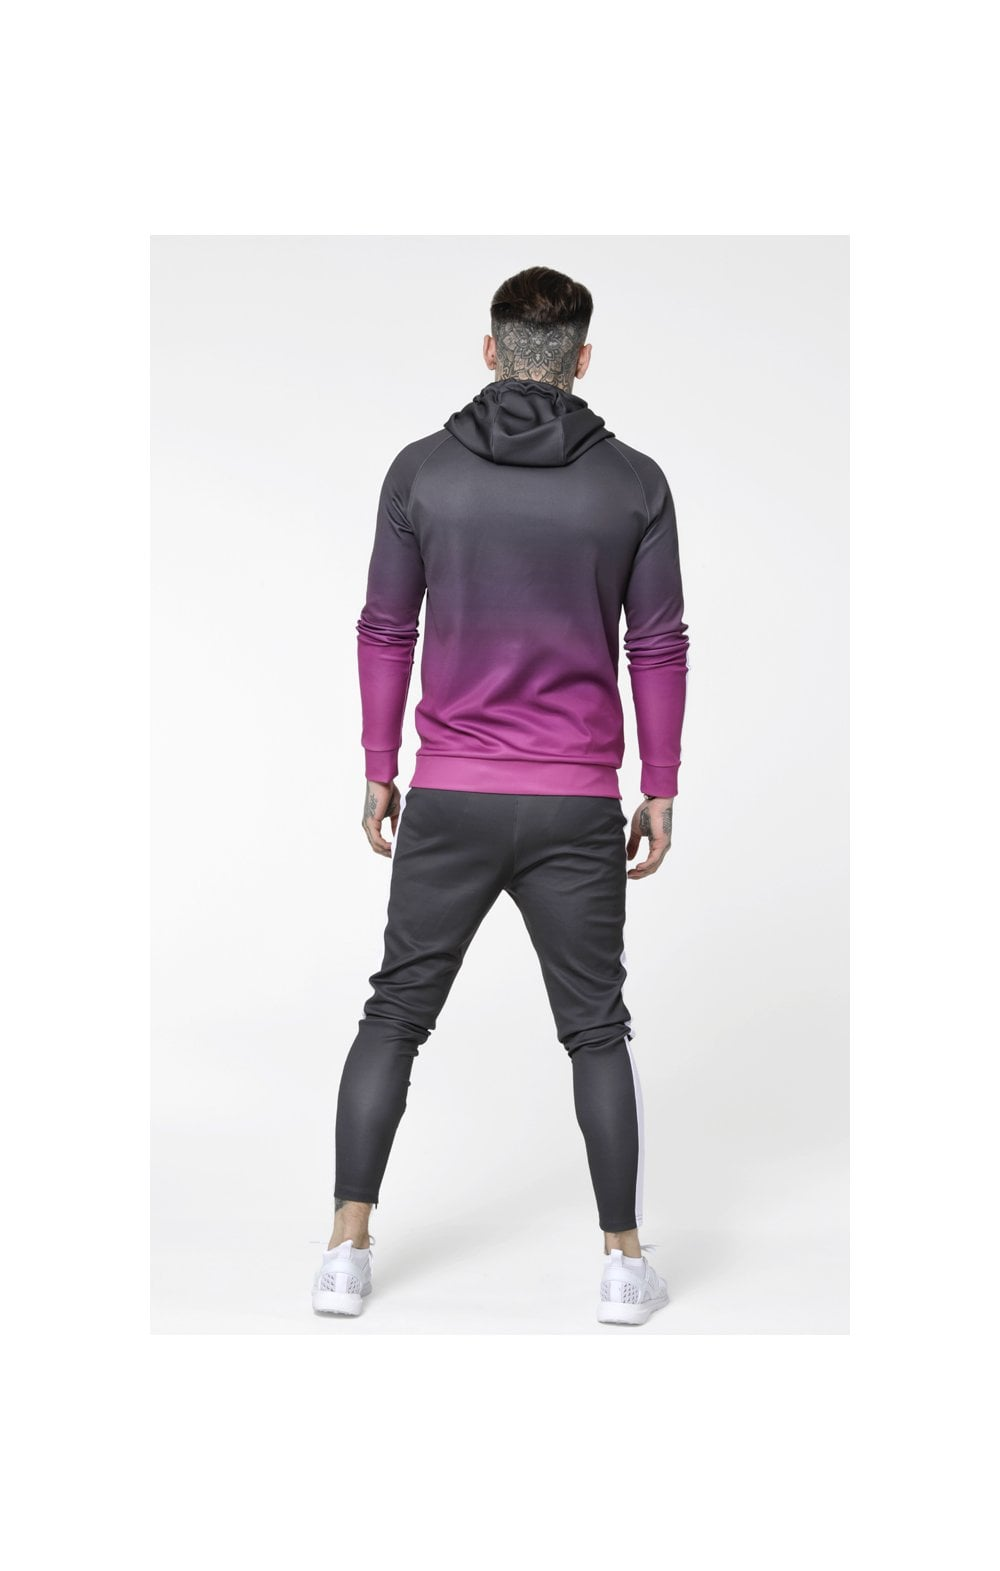 Load image into Gallery viewer, SikSilk Vapour Fade Overhead Hoodie - Grey & Pink (5)